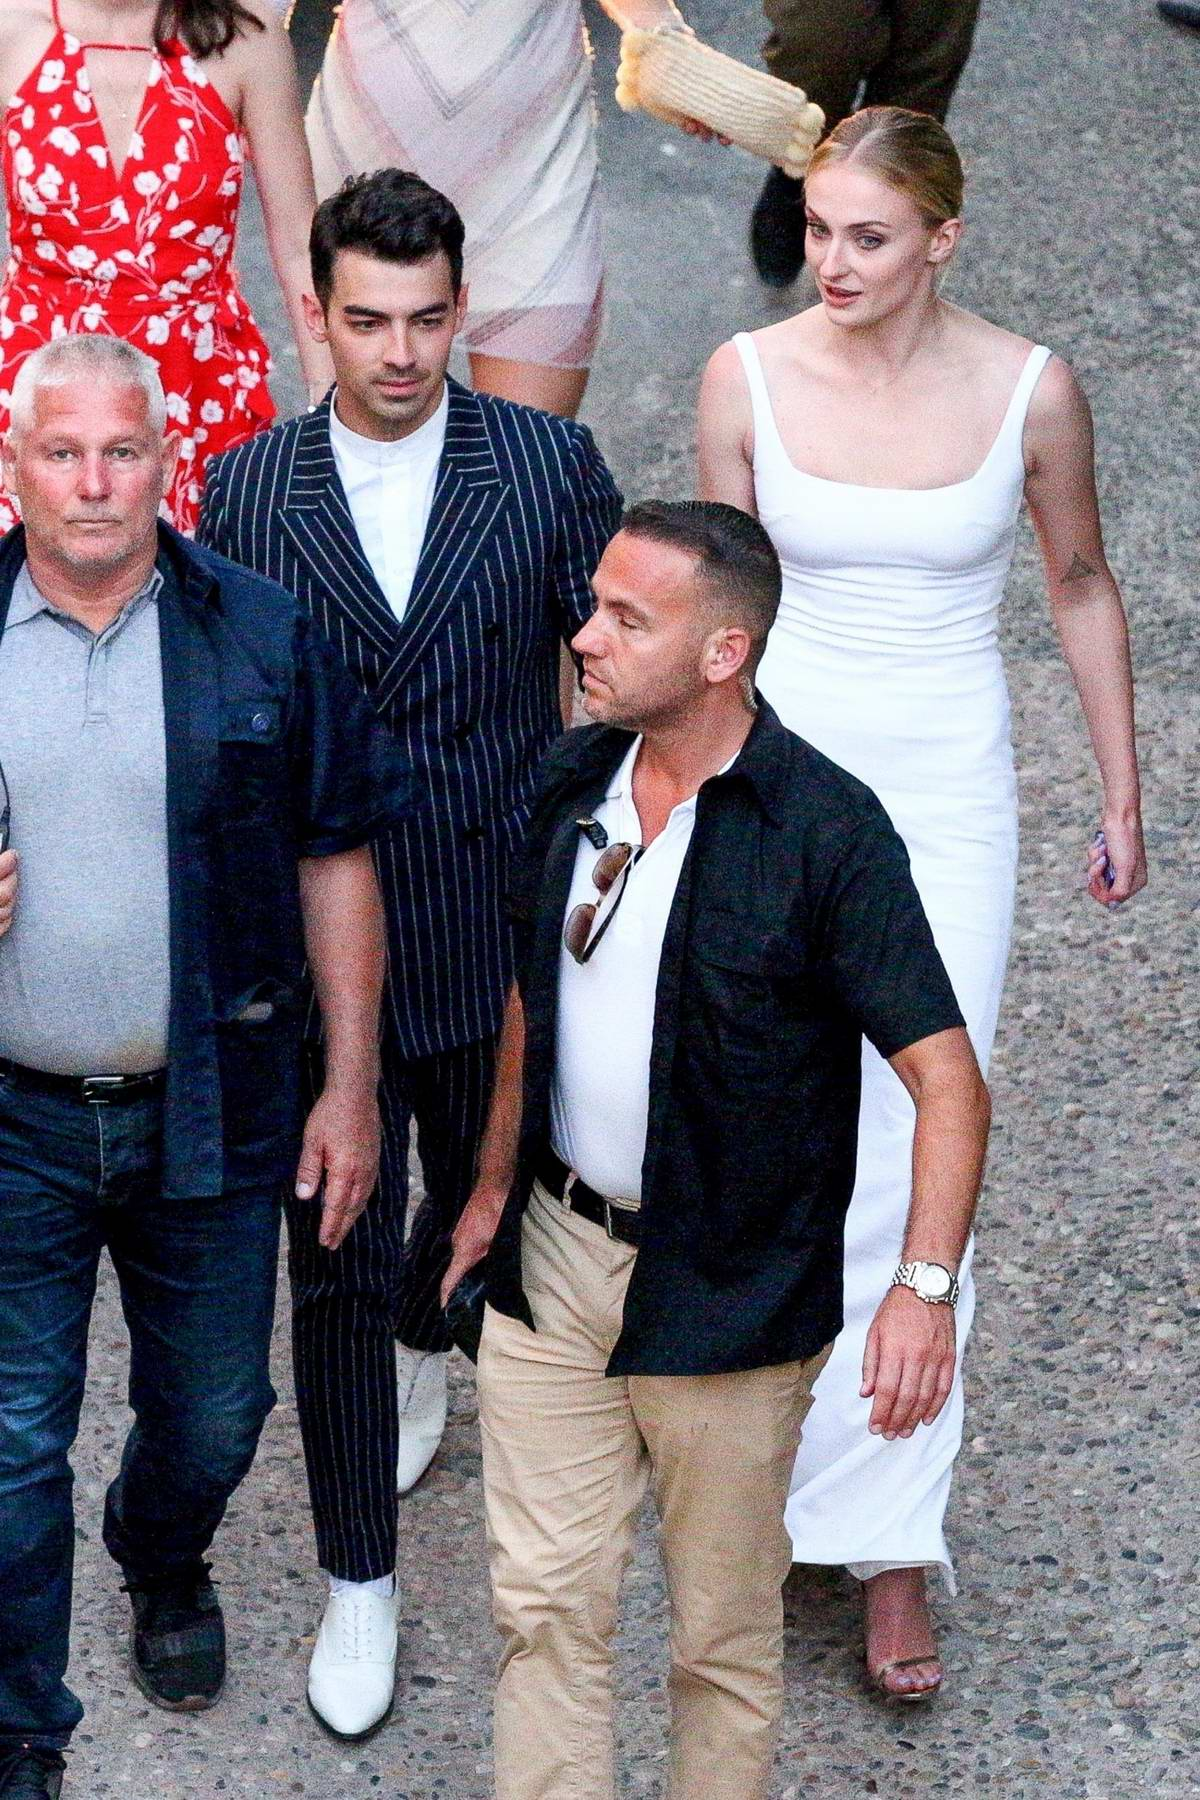 Sophie Turner and Joe Jonas arrive for a pre-wedding party in Avignon, France